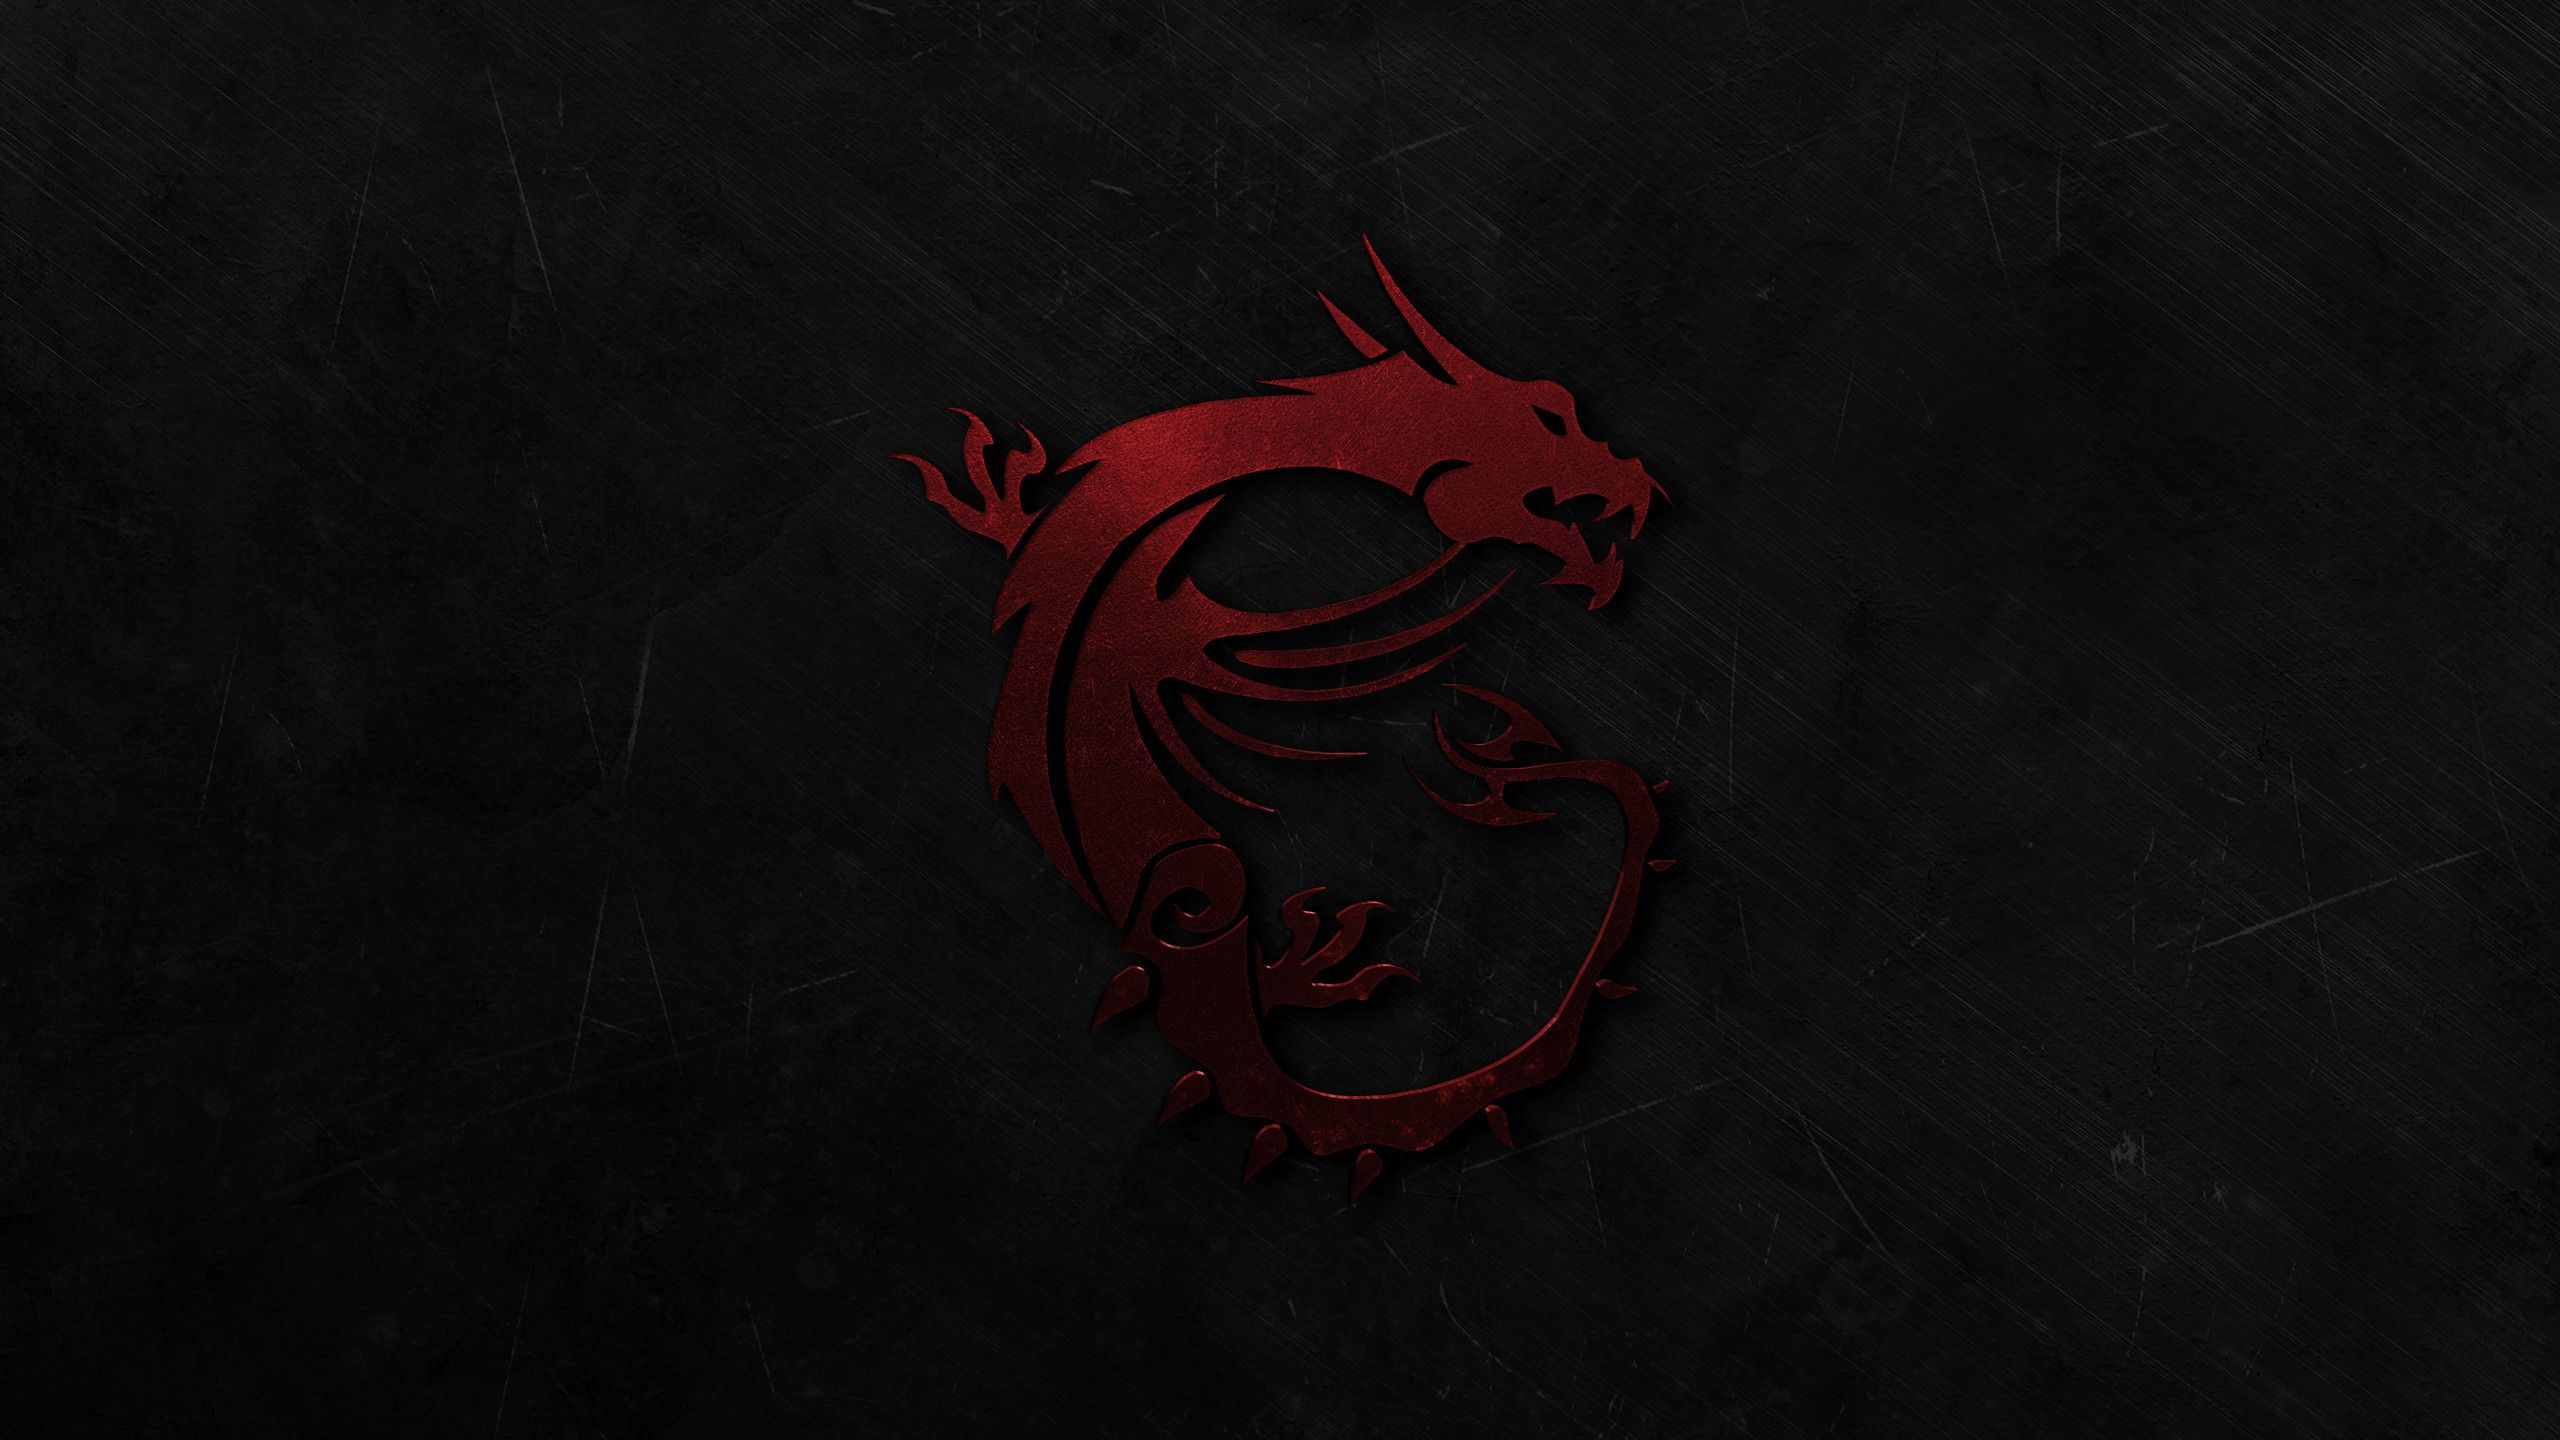 Black And Red Dragon Gaming Wallpapers Top Free Black And Red